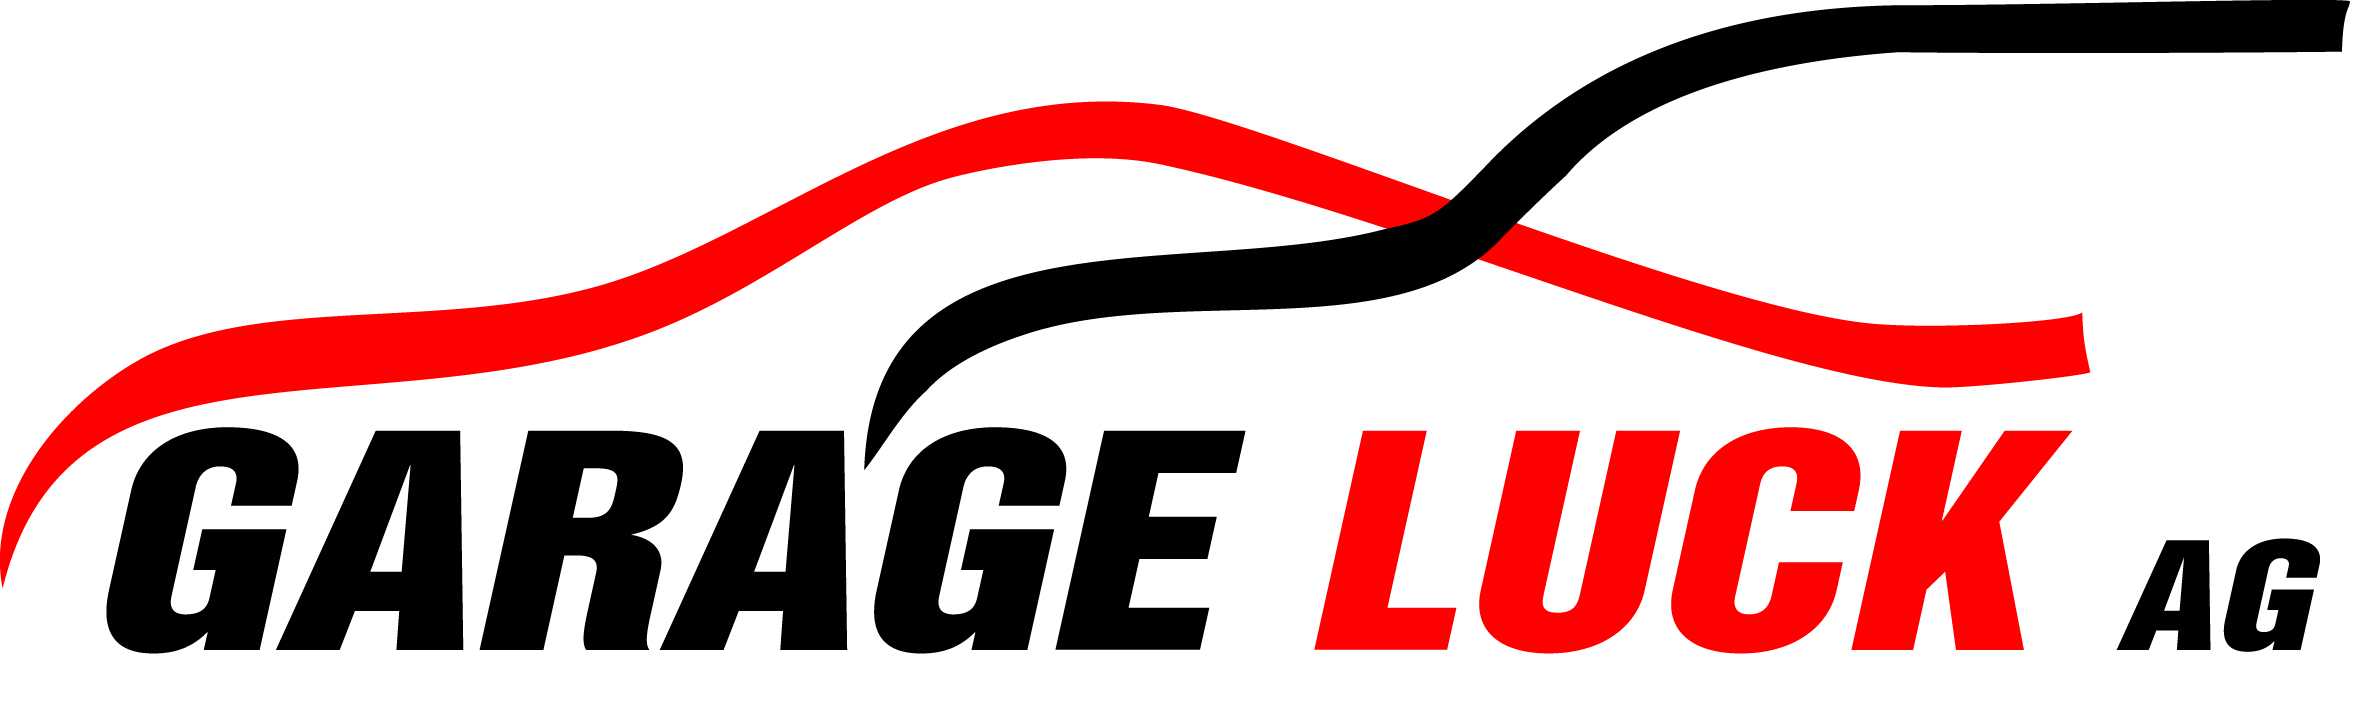 Garage Luck AG - Autowerkstatt in Schluein